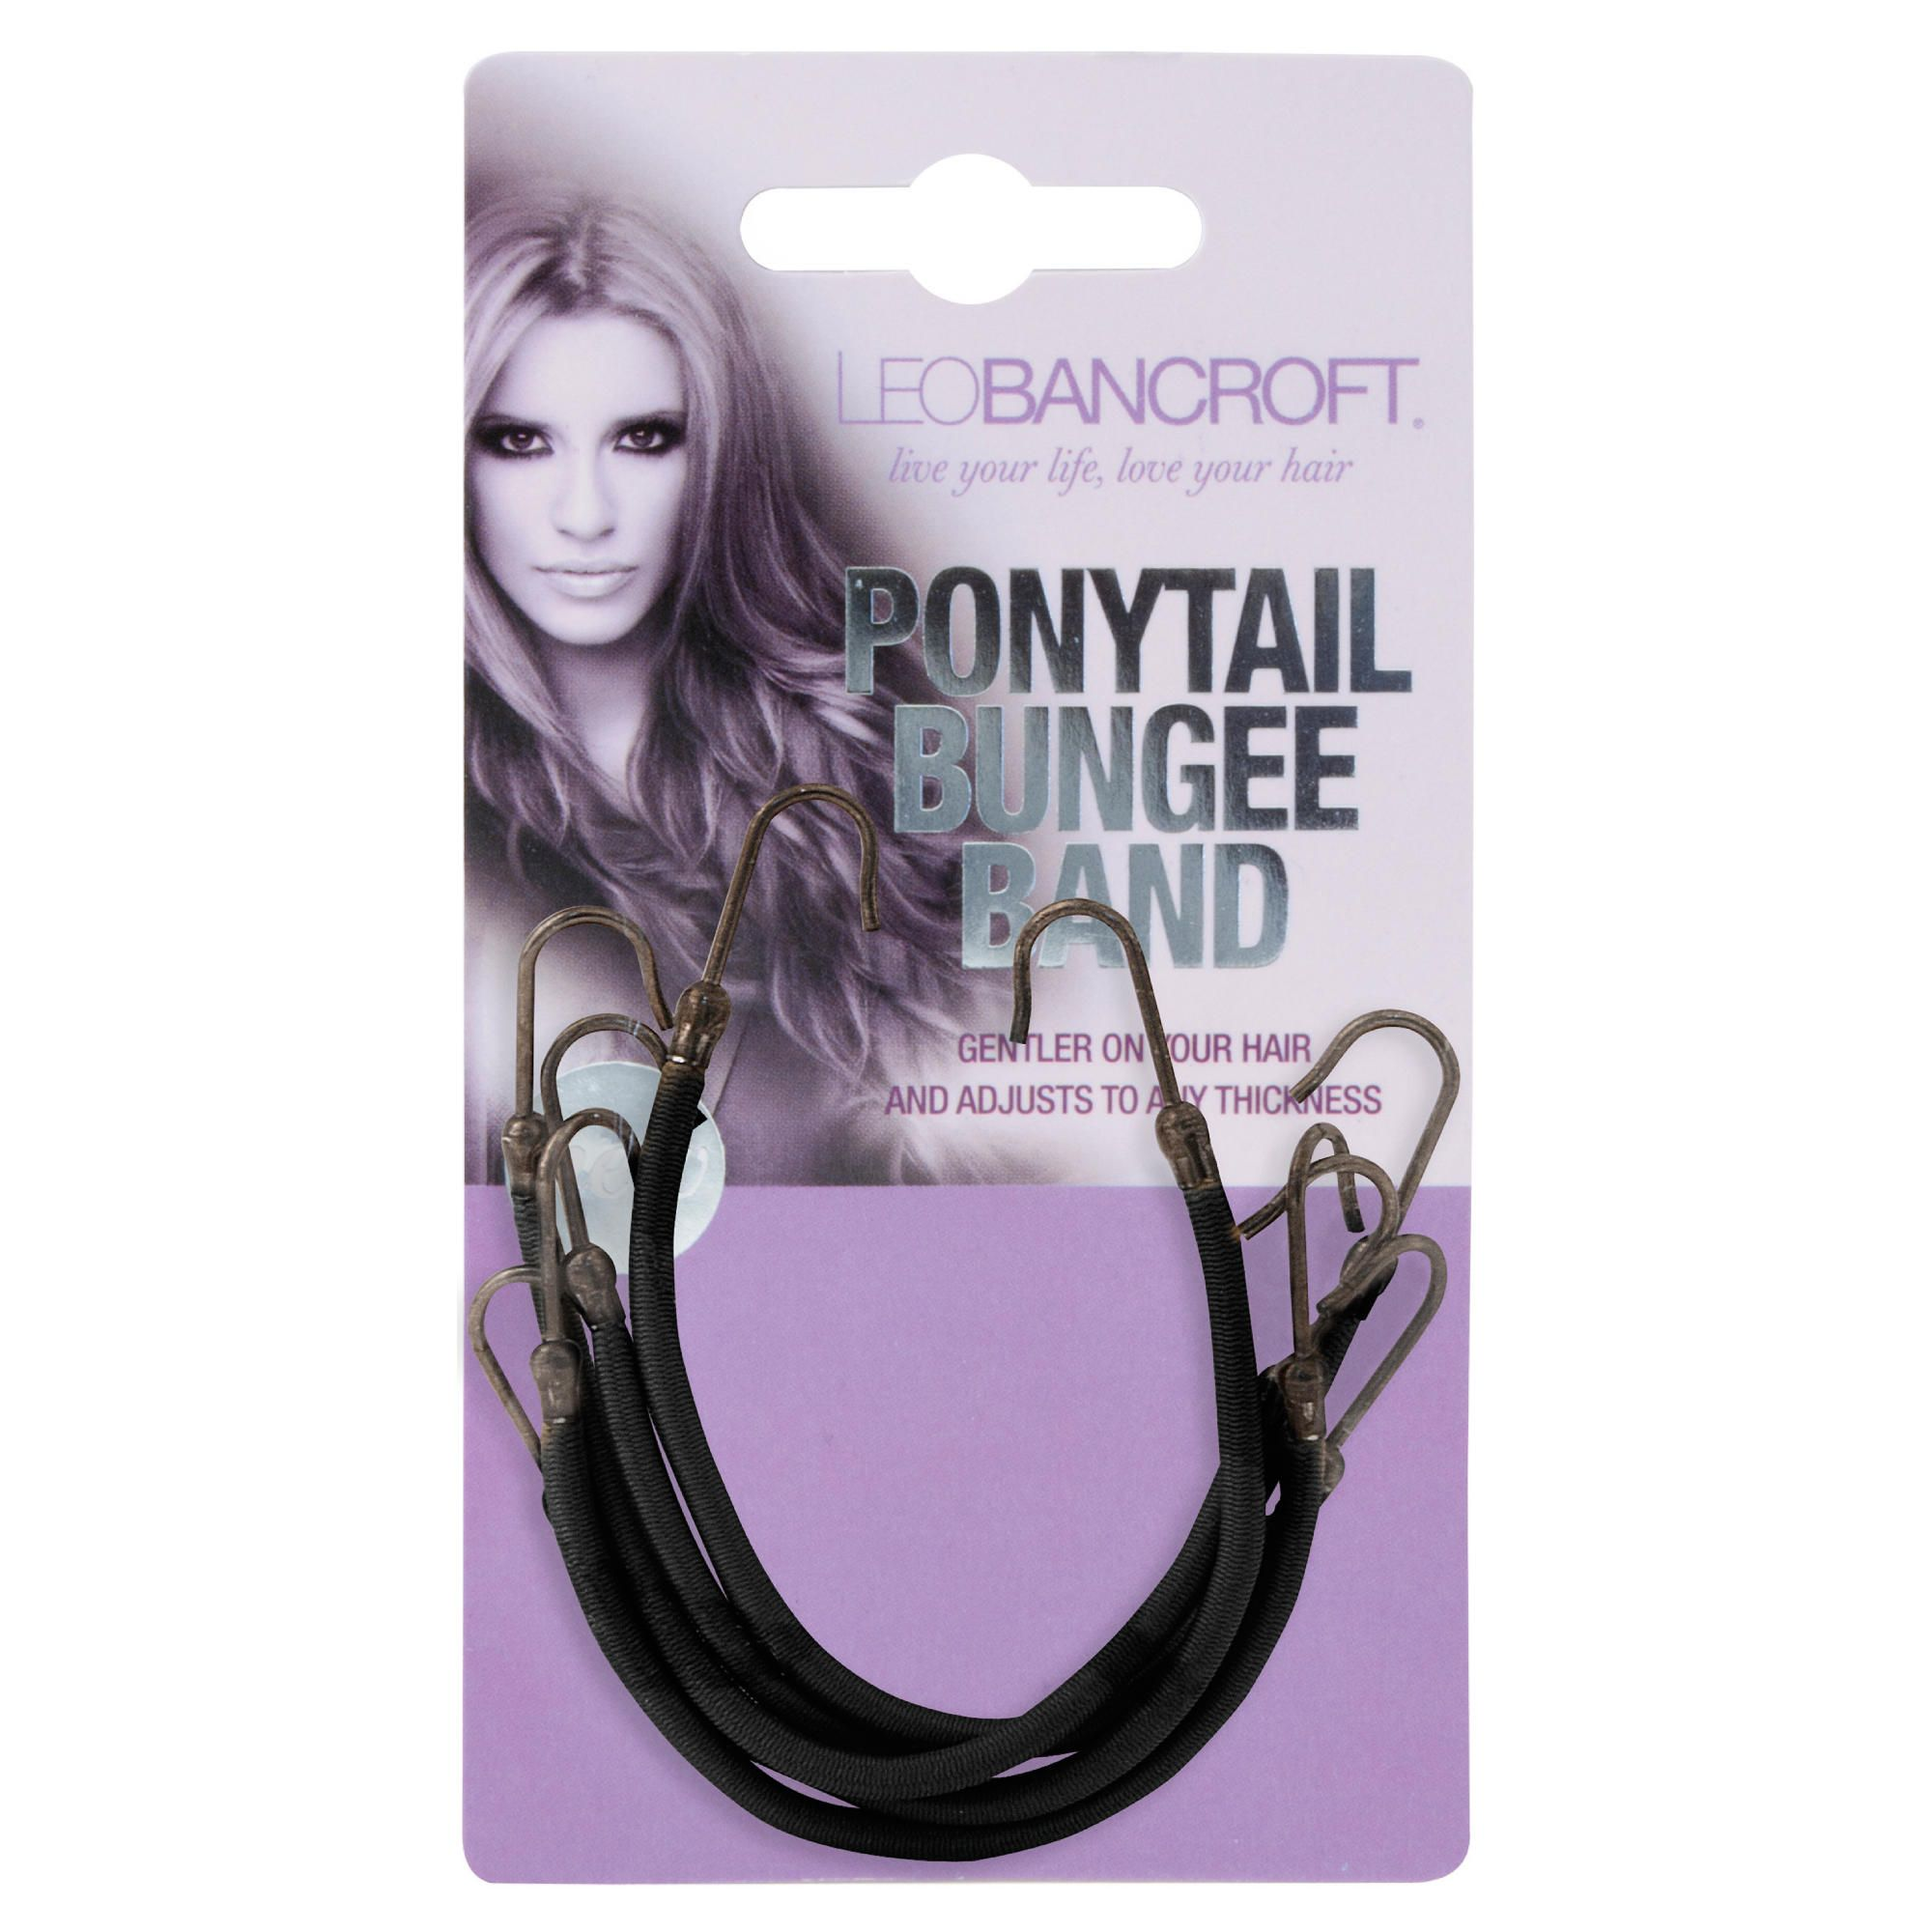 Leo Bancroft Hair Bungee - Black